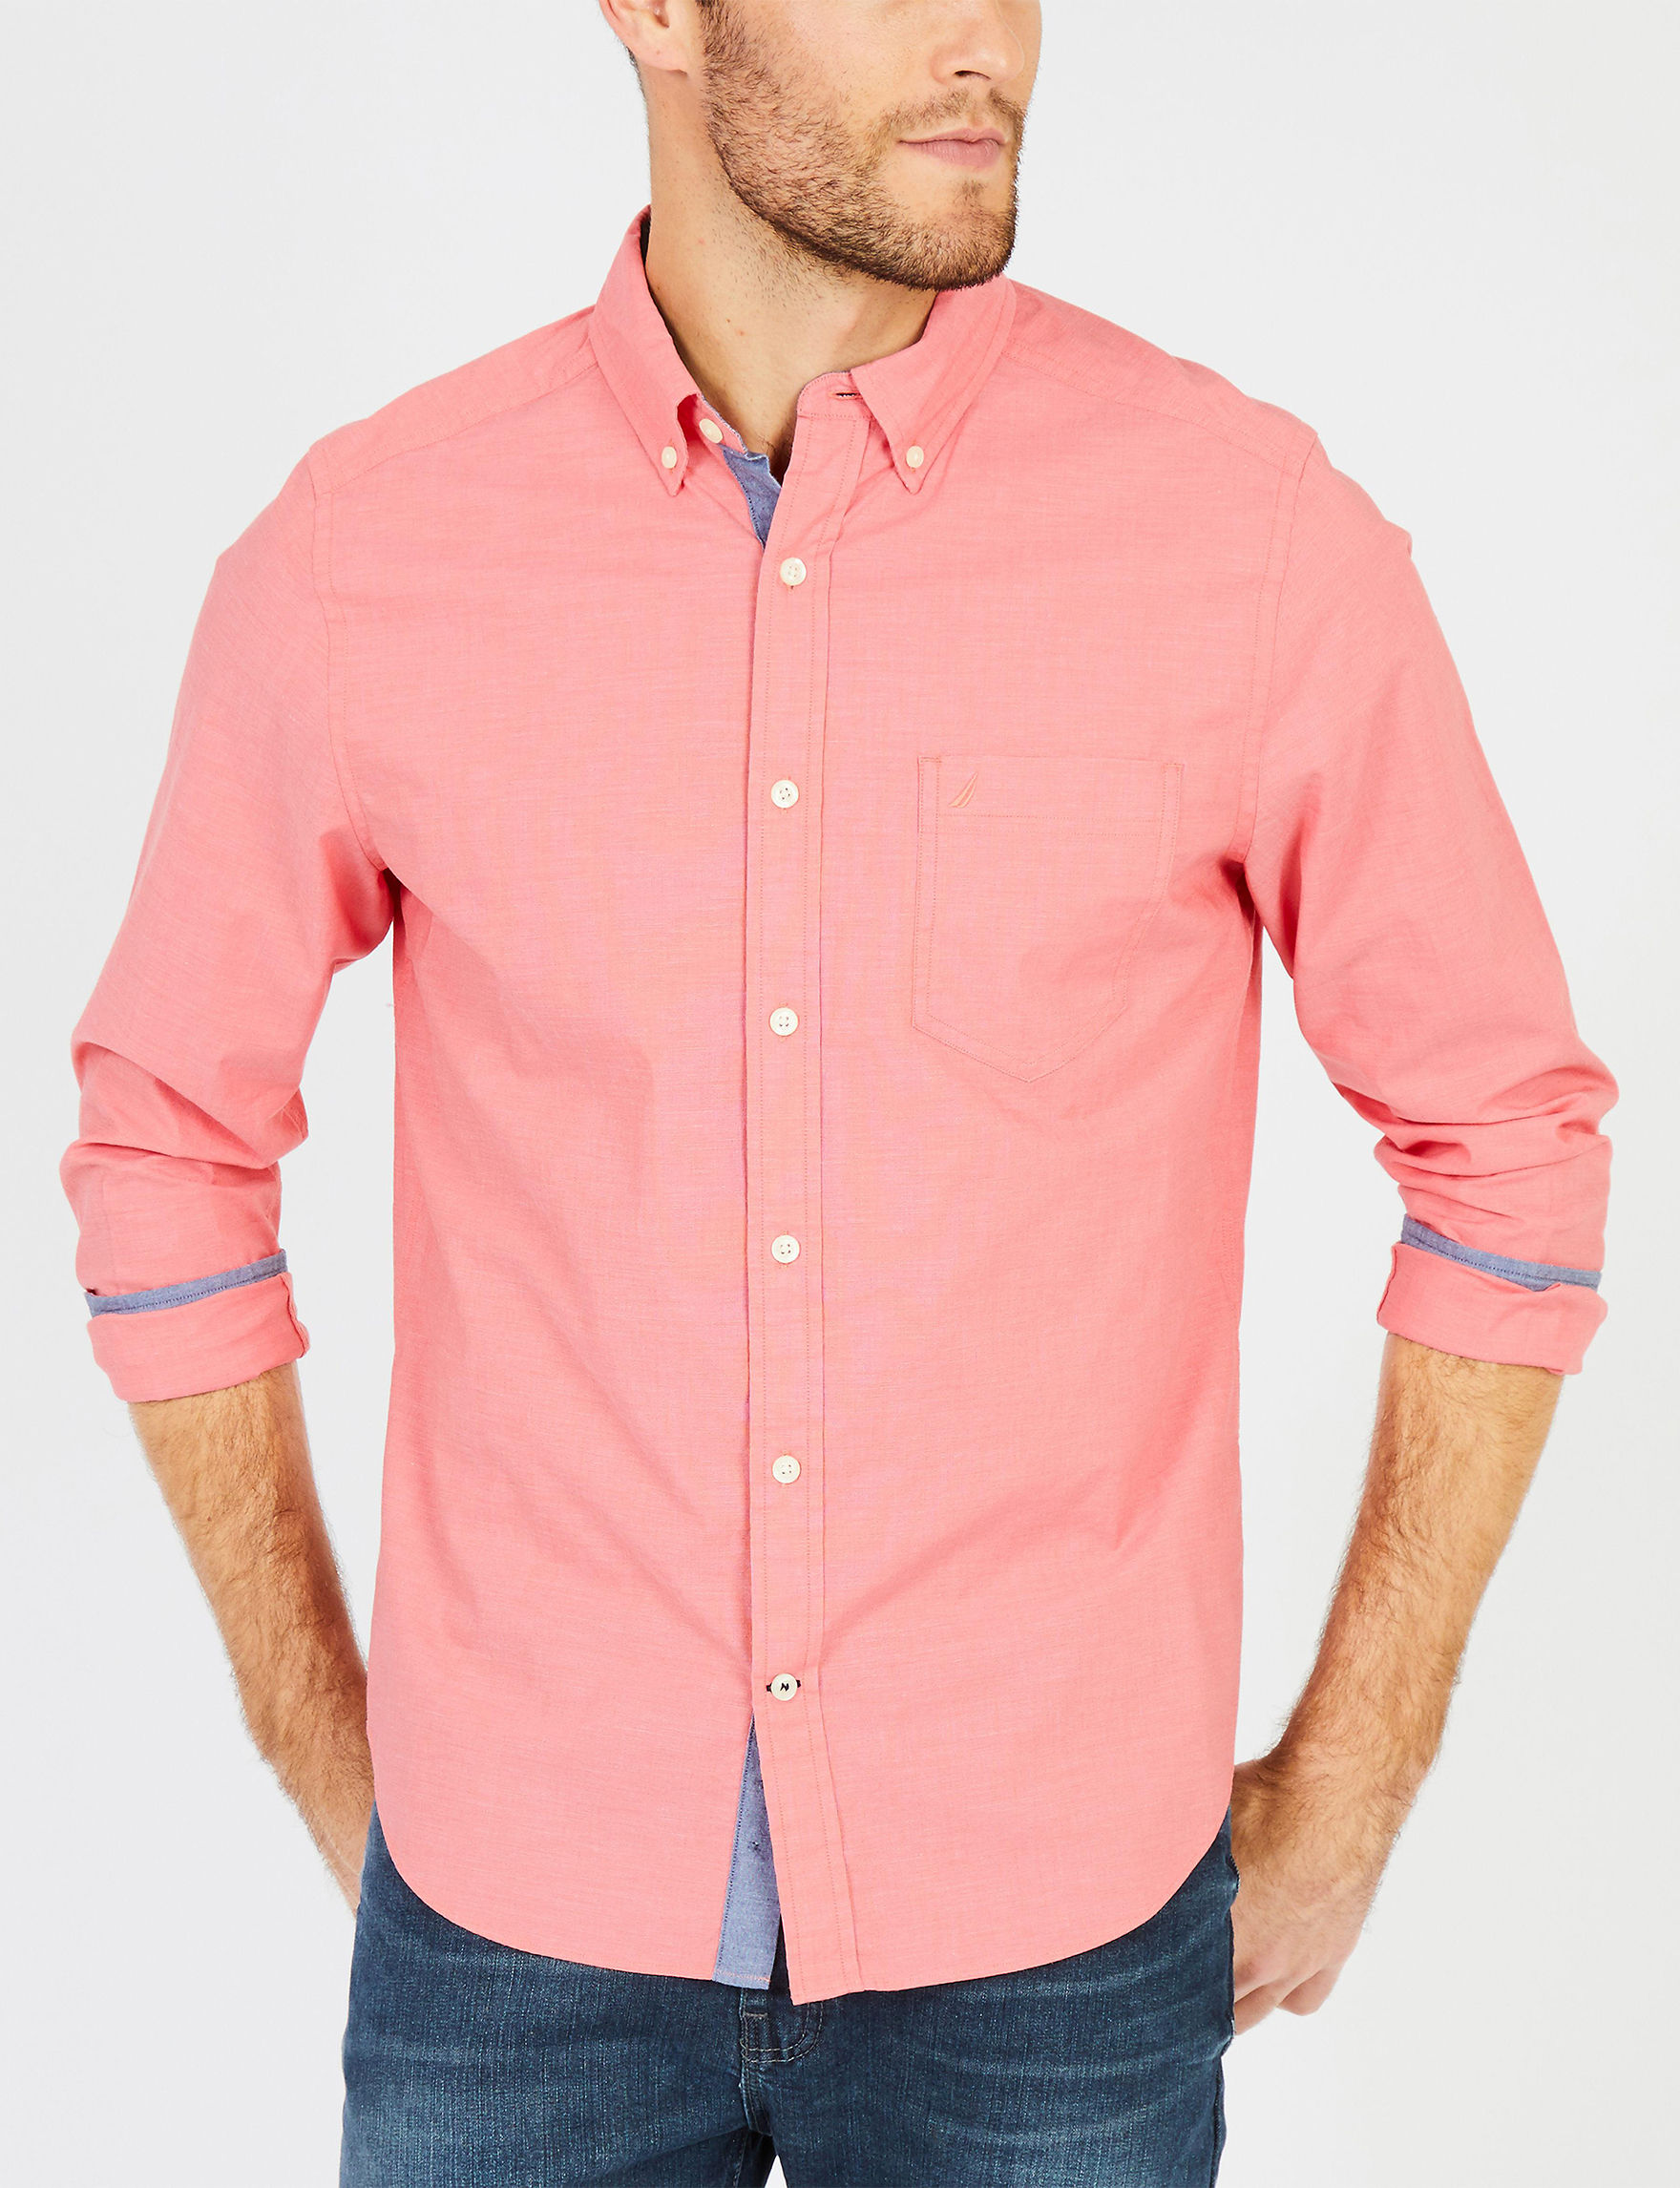 Nautica Salmon Casual Button Down Shirts